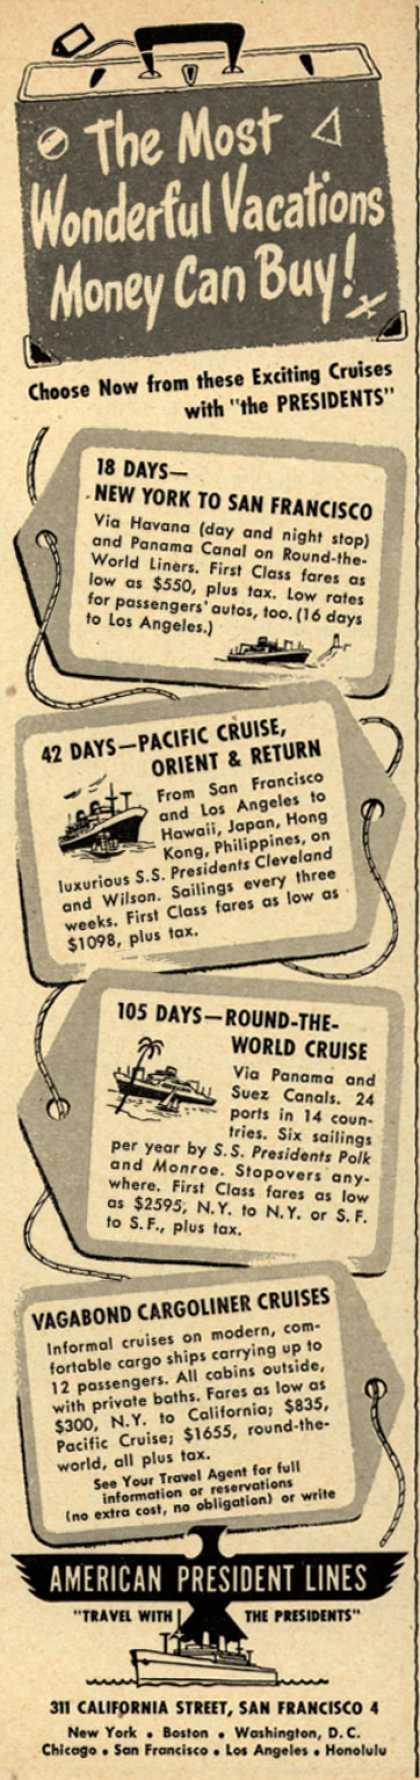 American President Lines – The Most Wonderful Vacations Money Can Buy (1950)